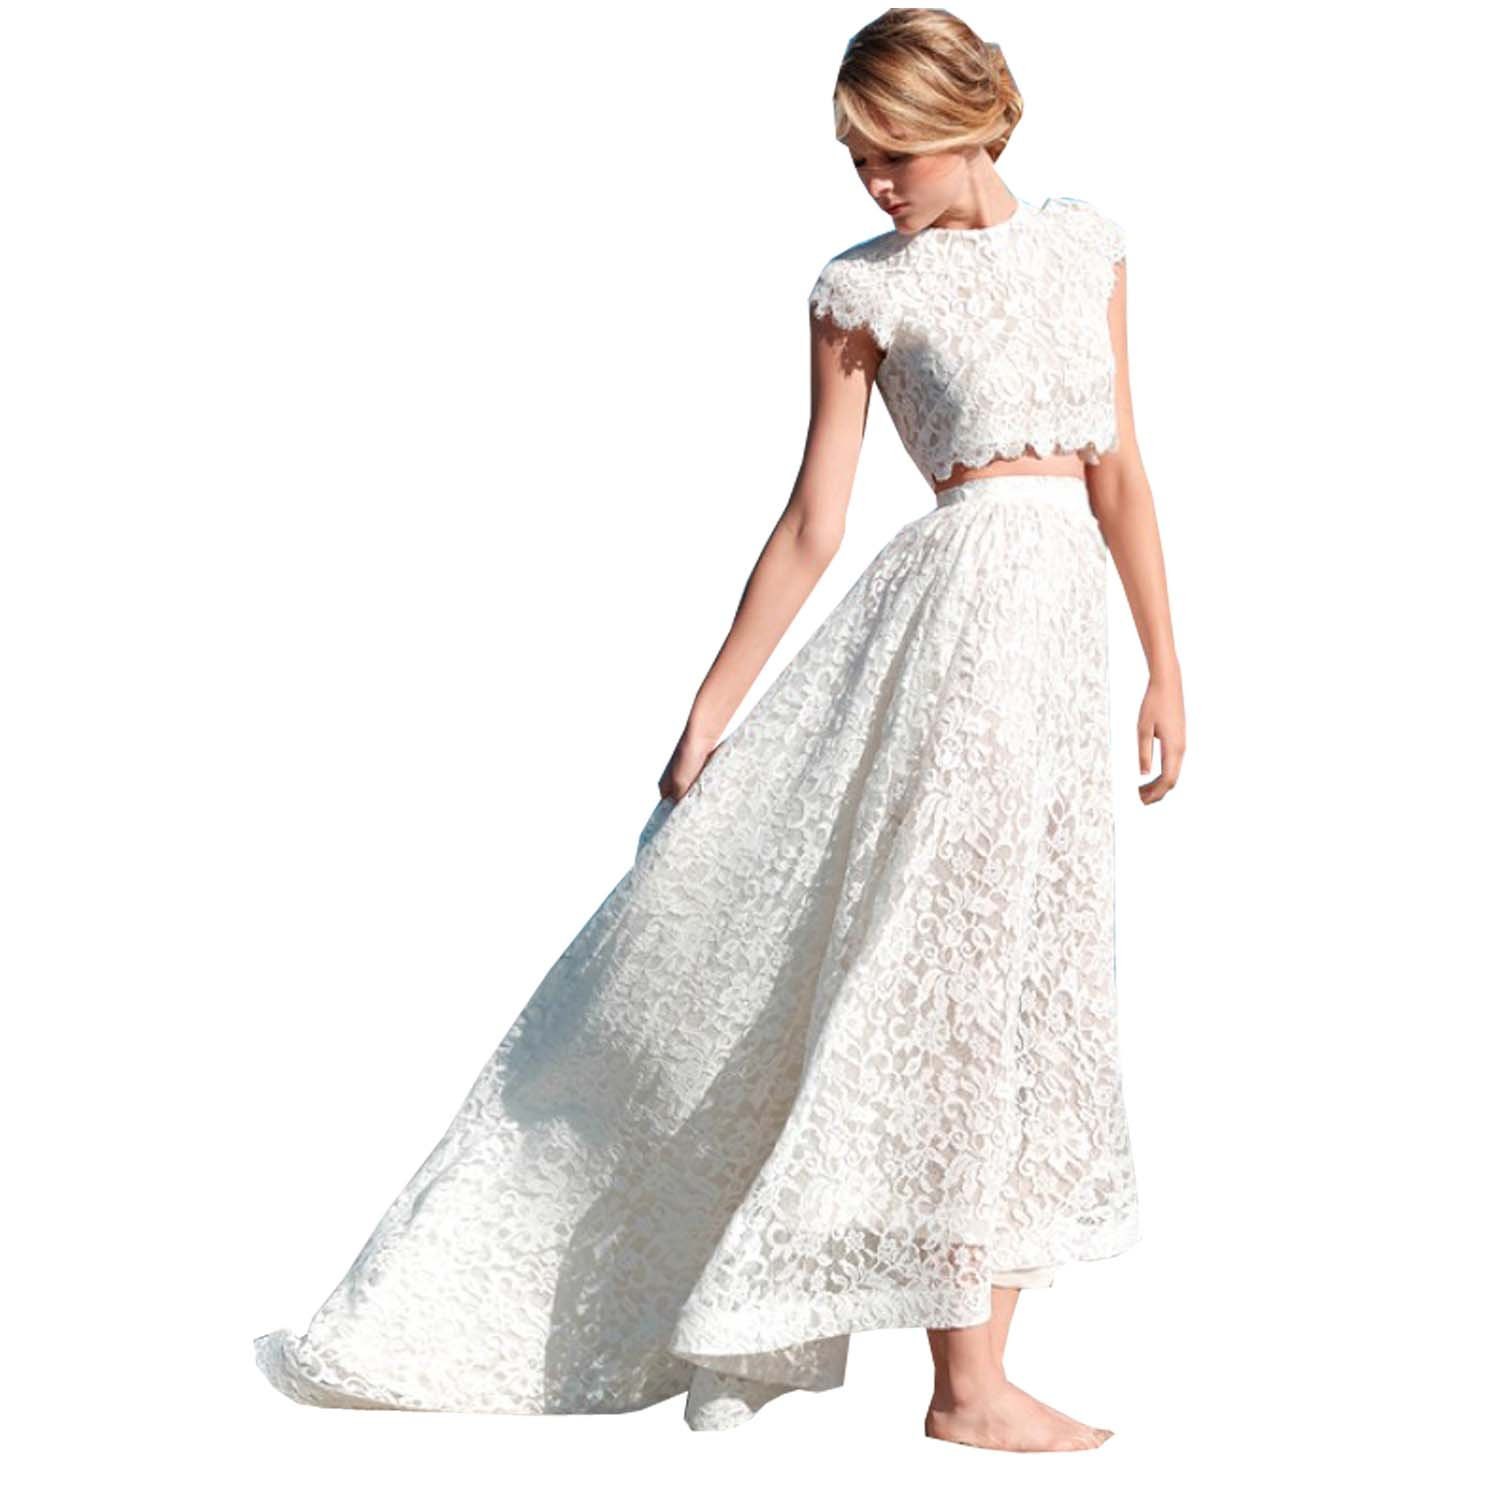 Kelaixiang Lace Jewel Beach Wedding Dress for Women 2PCS with Sleeves